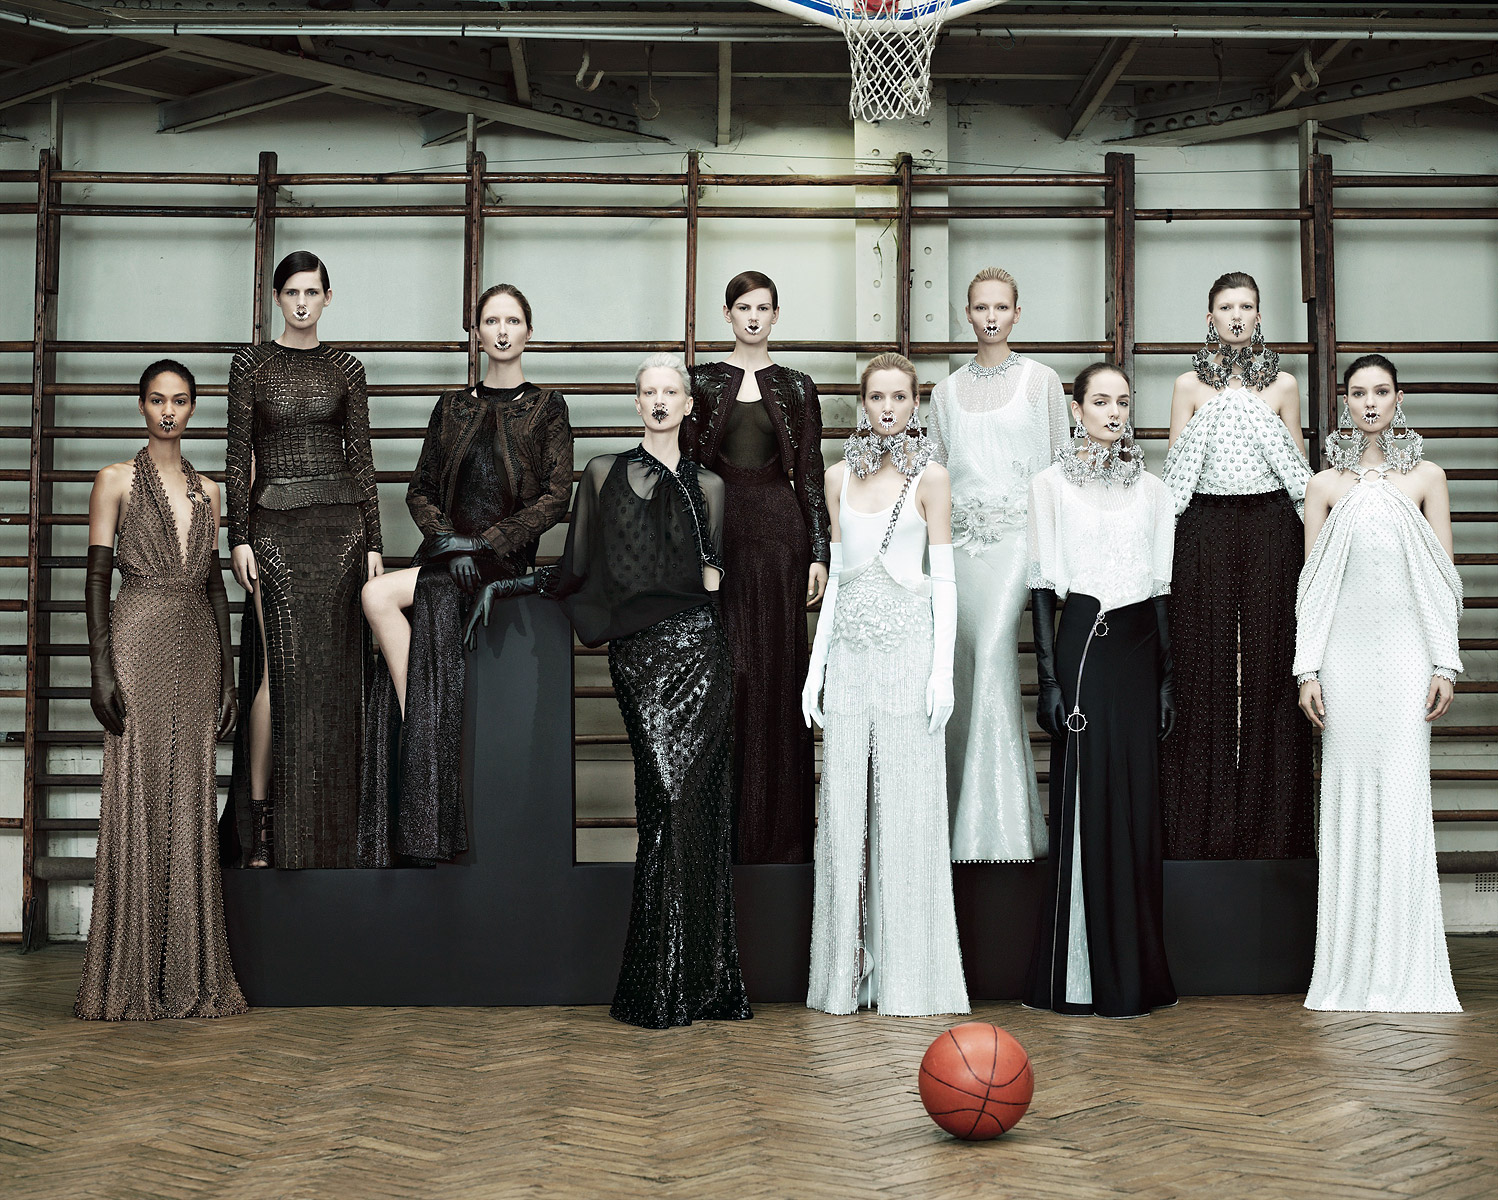 givenchy-spring-2012-couture-21_170701305916.jpg